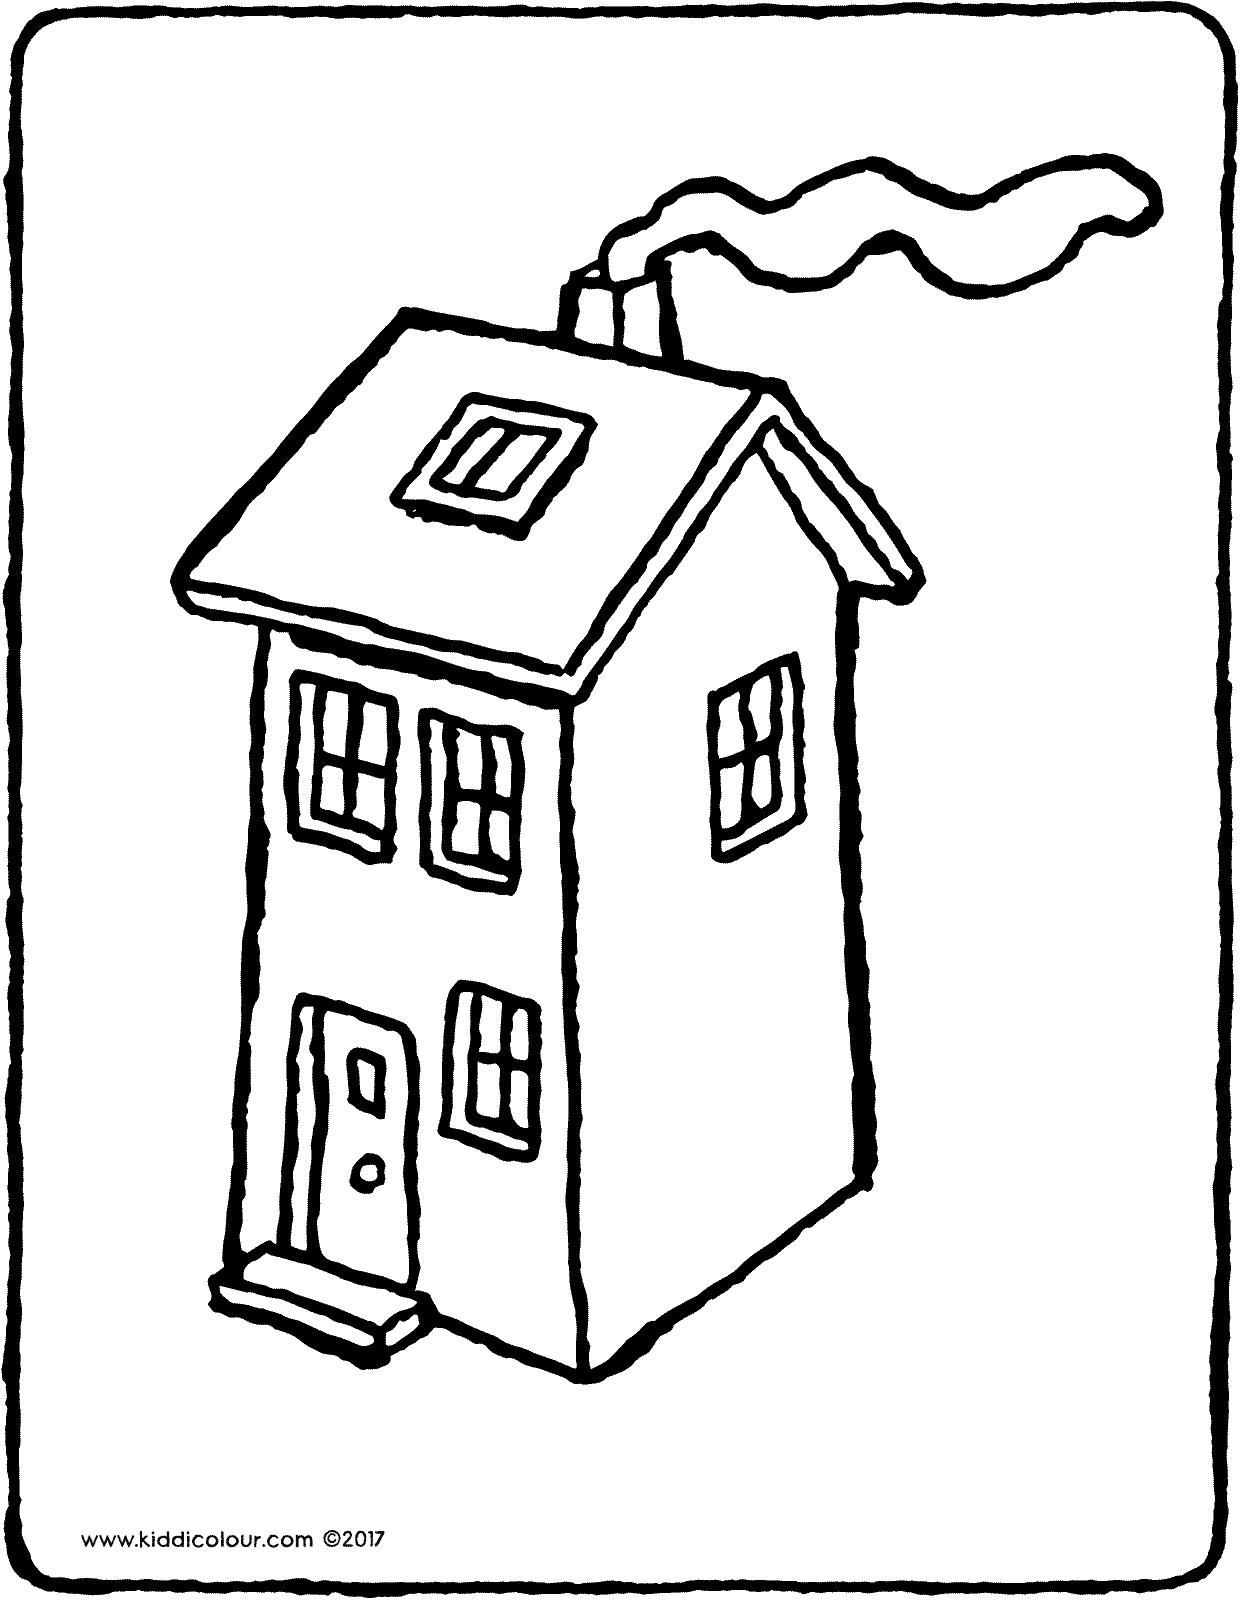 colouring pictures of houses two story house coloring page free clip art pictures of colouring houses